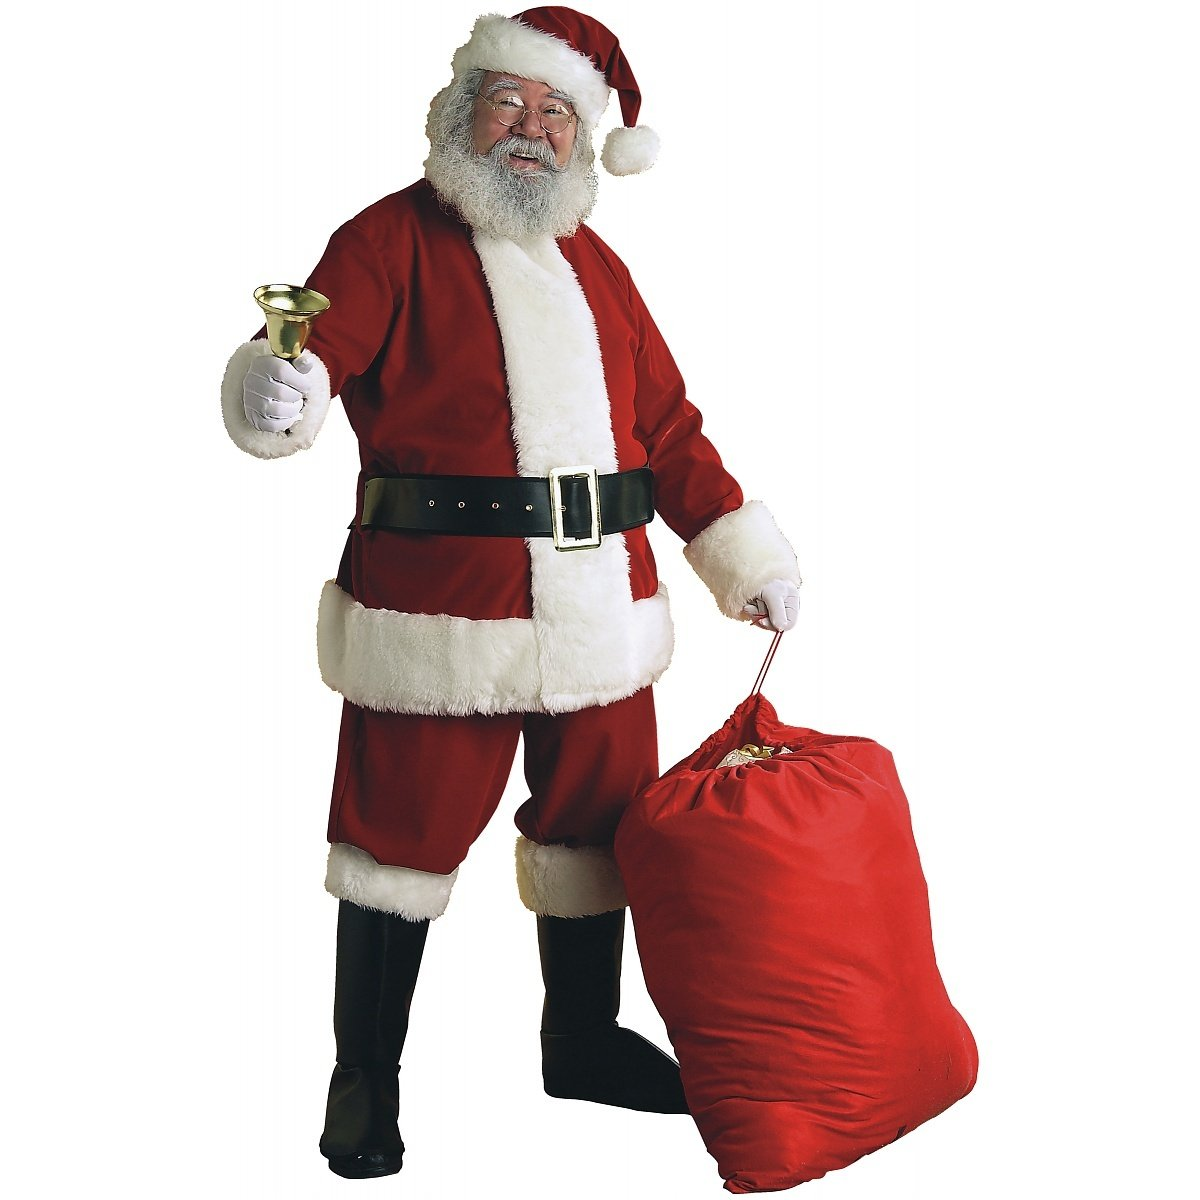 Deluxe Velvet Santa Suit Adult Costume - Large by Rubie's